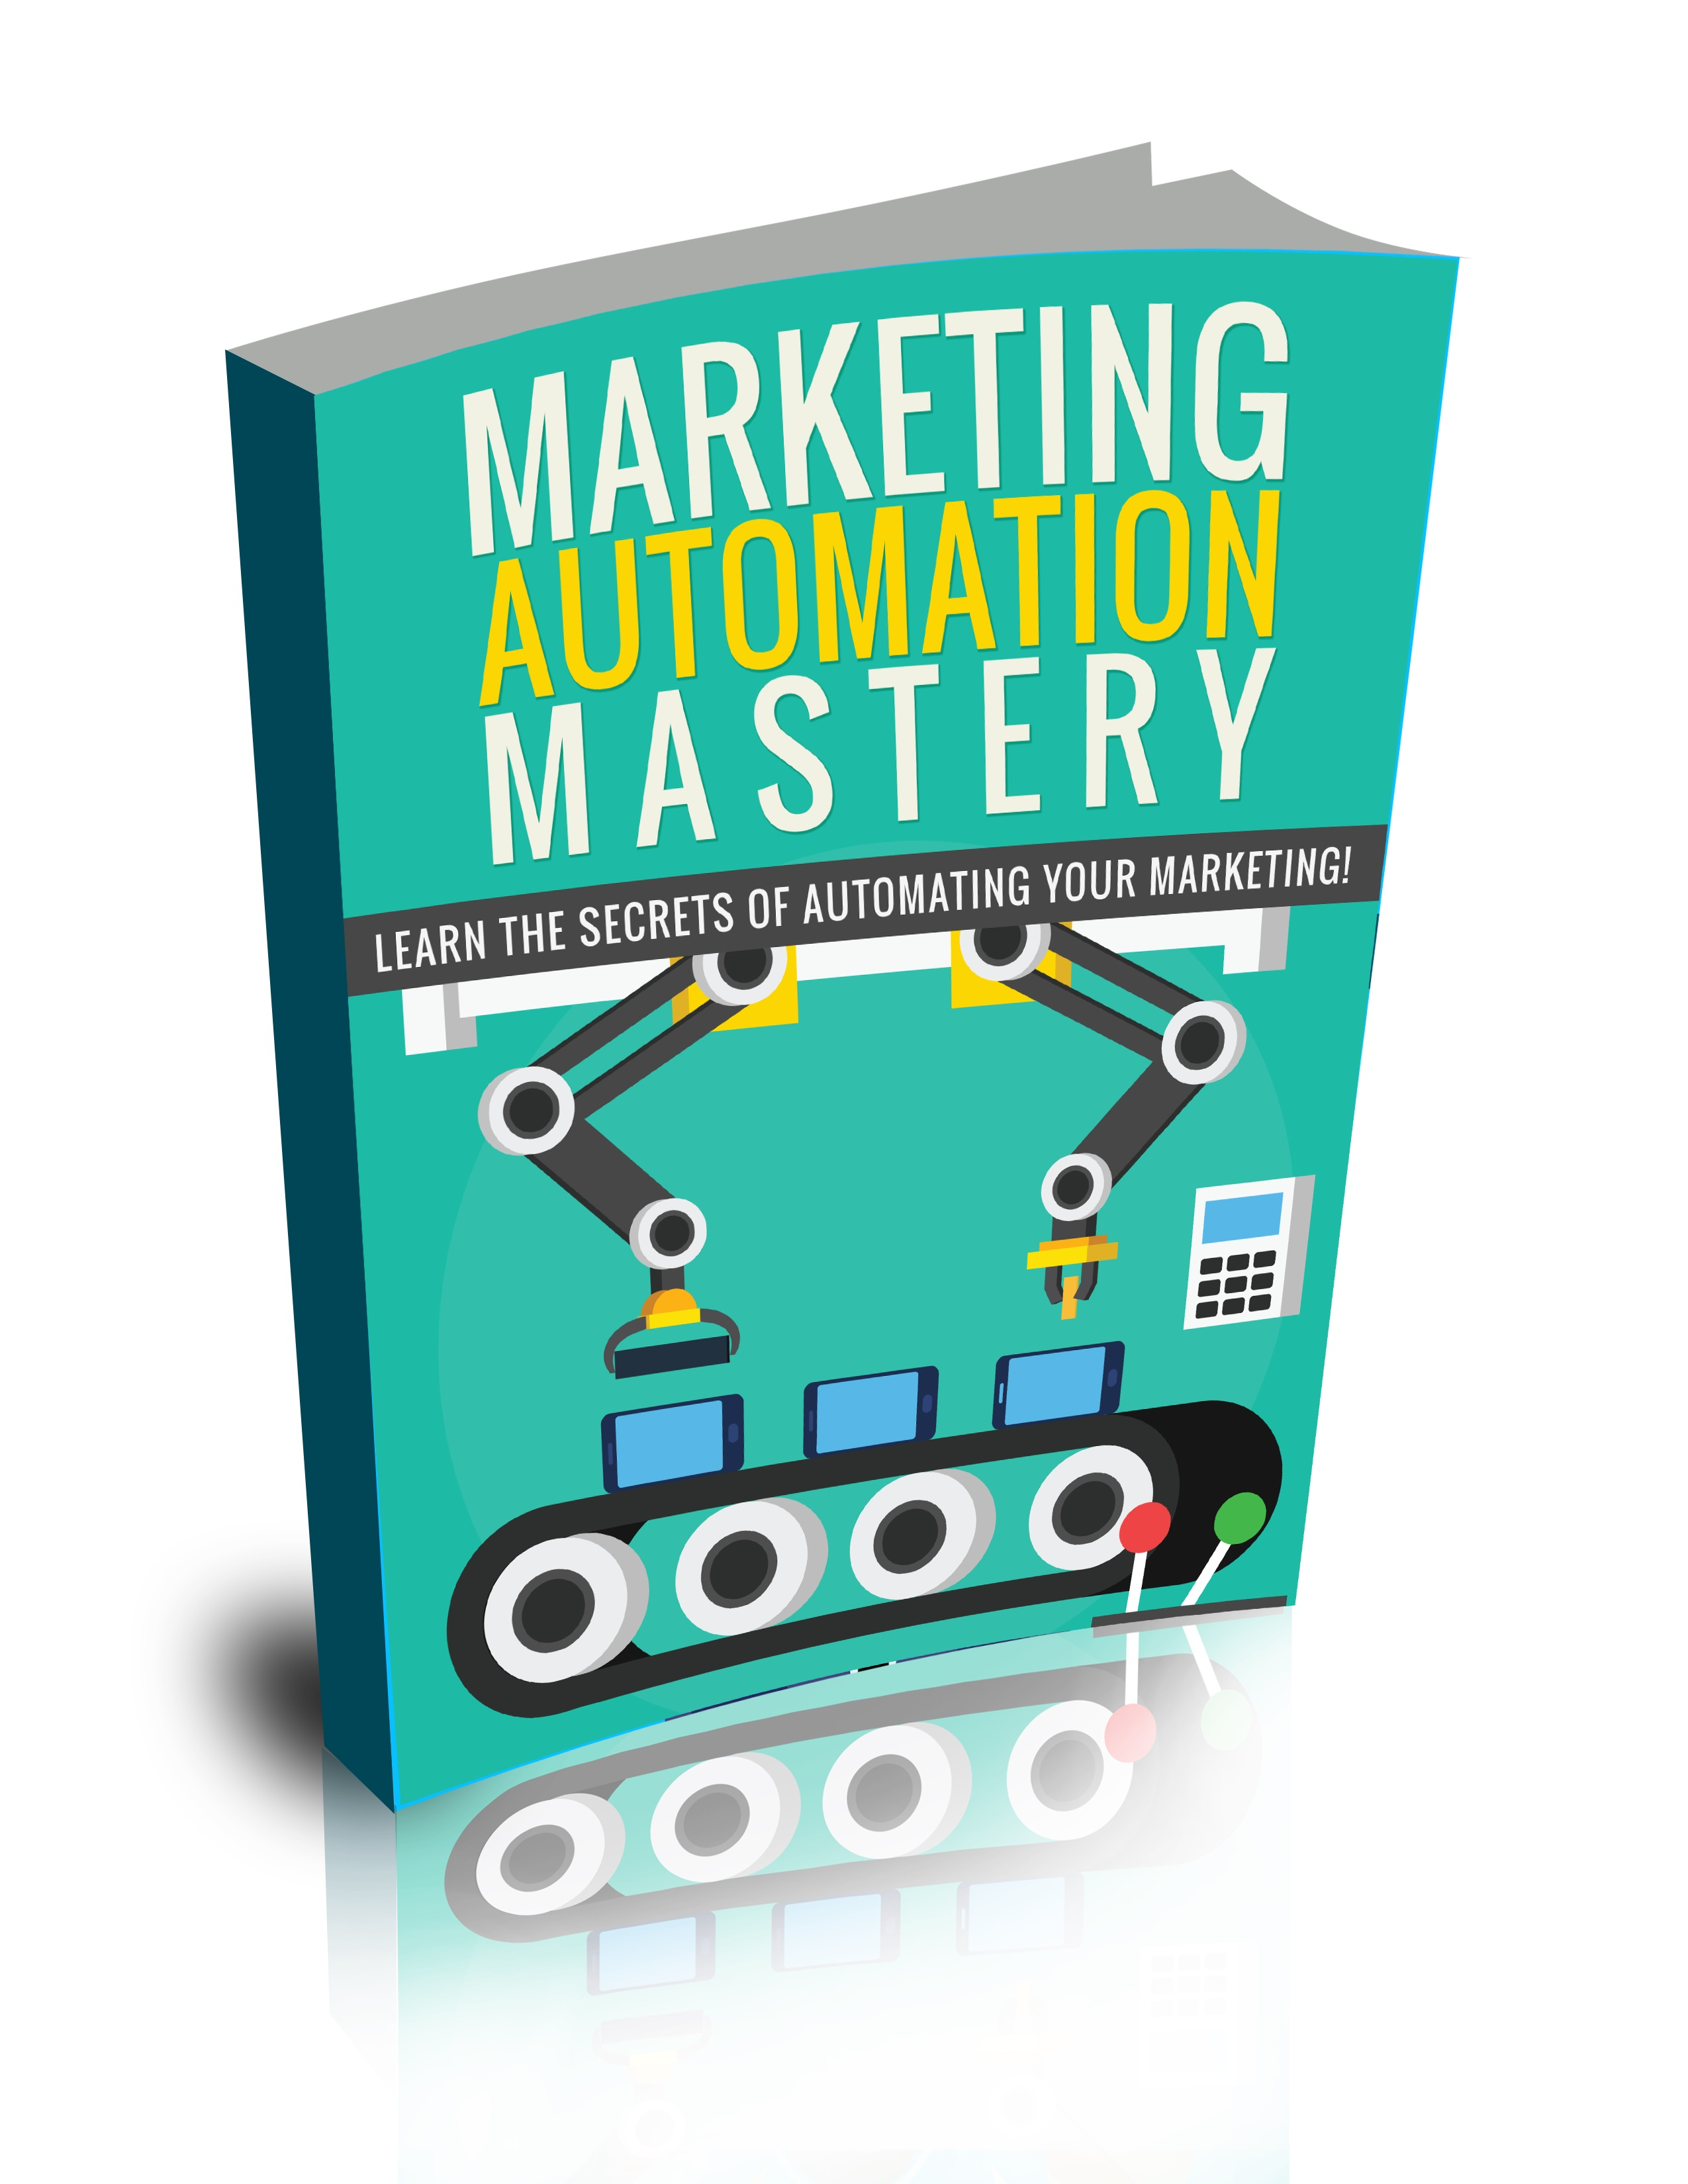 Marketing Automation Mastery Package